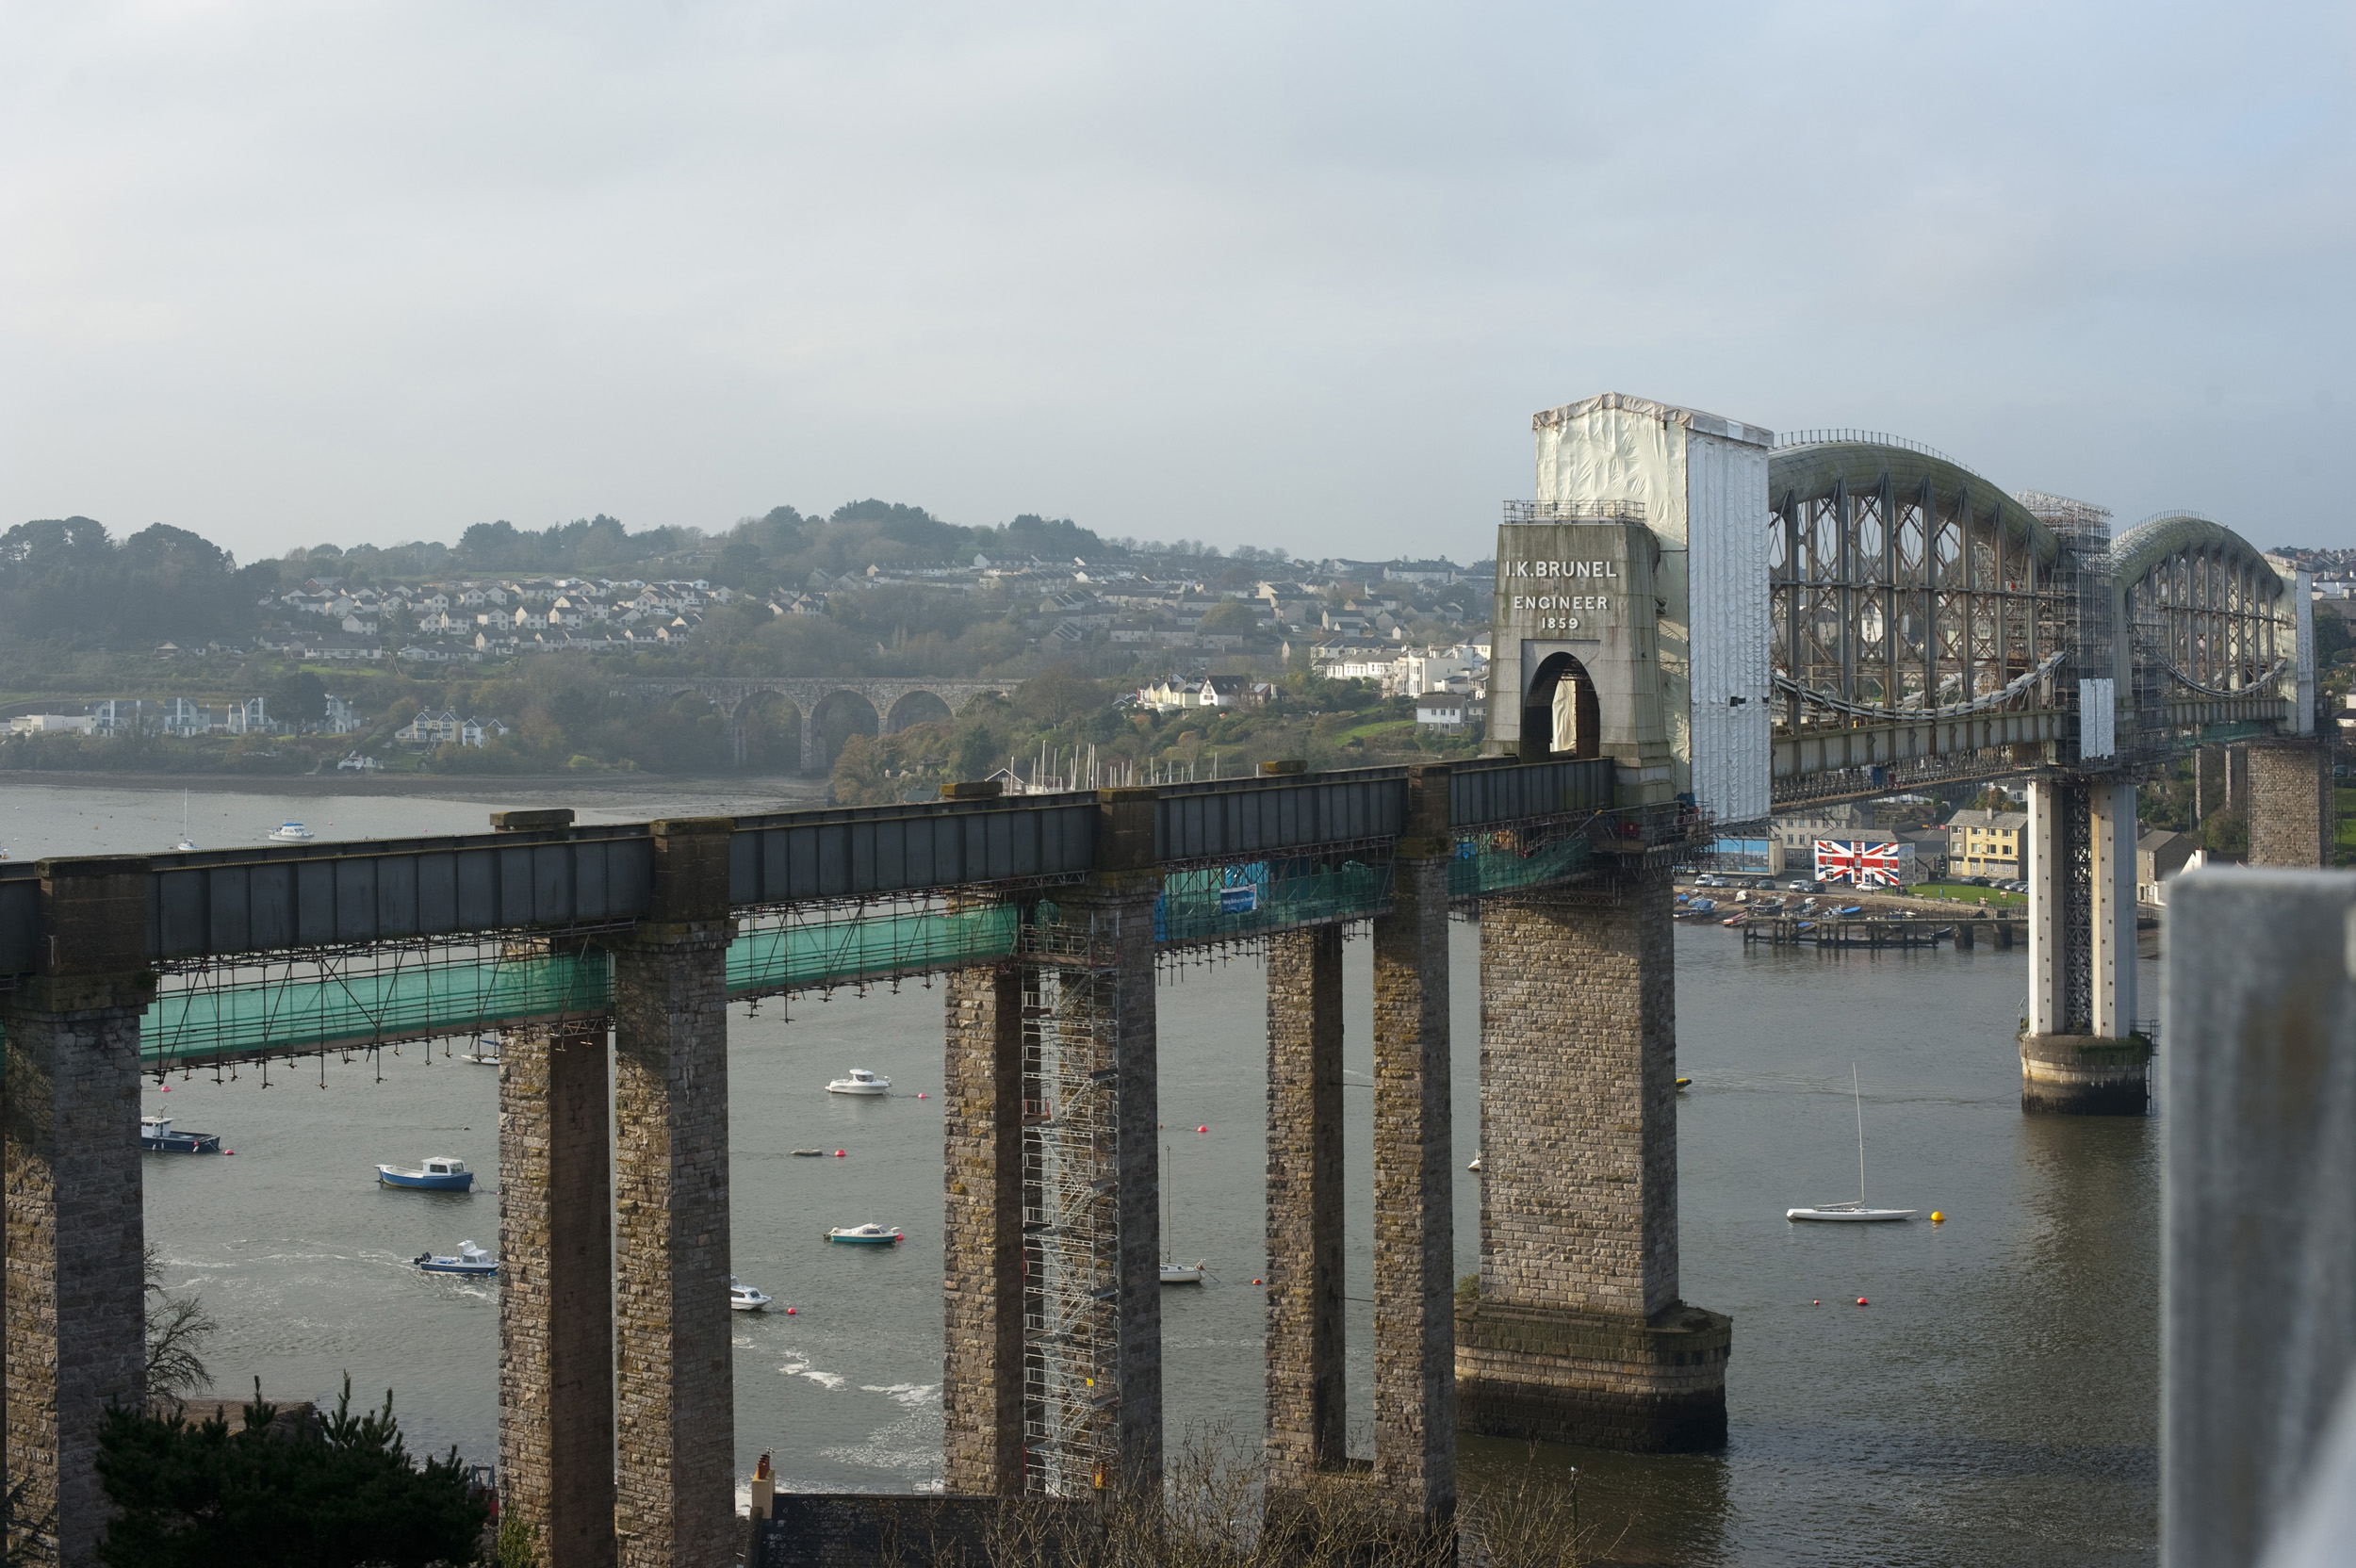 Bridge across the tamar, plymouth england, built by brunel